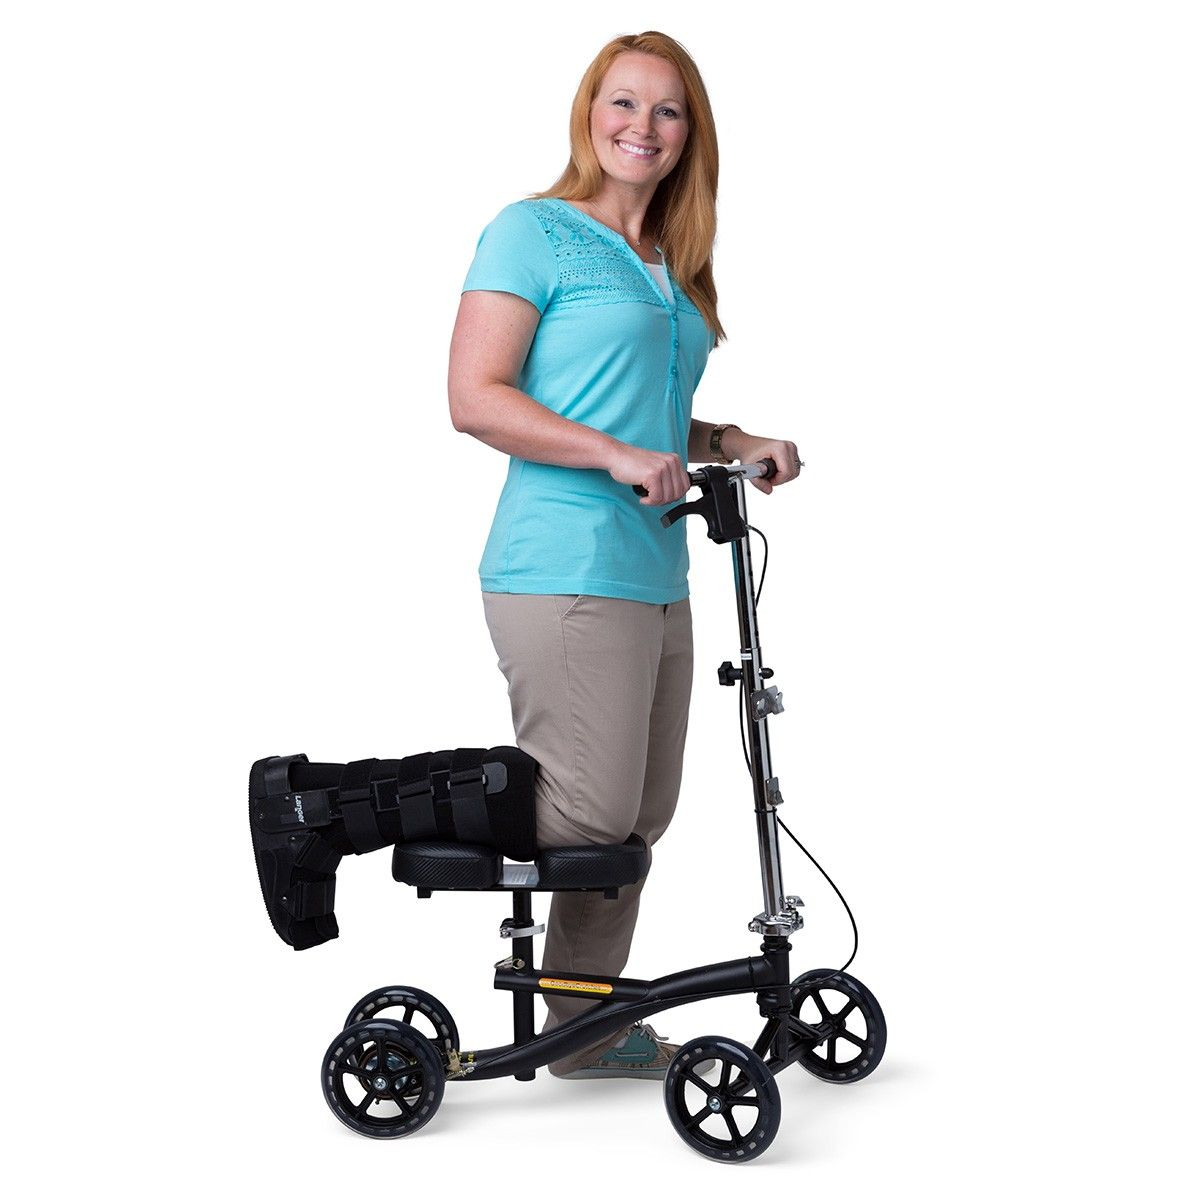 Scooter Instead Crutches